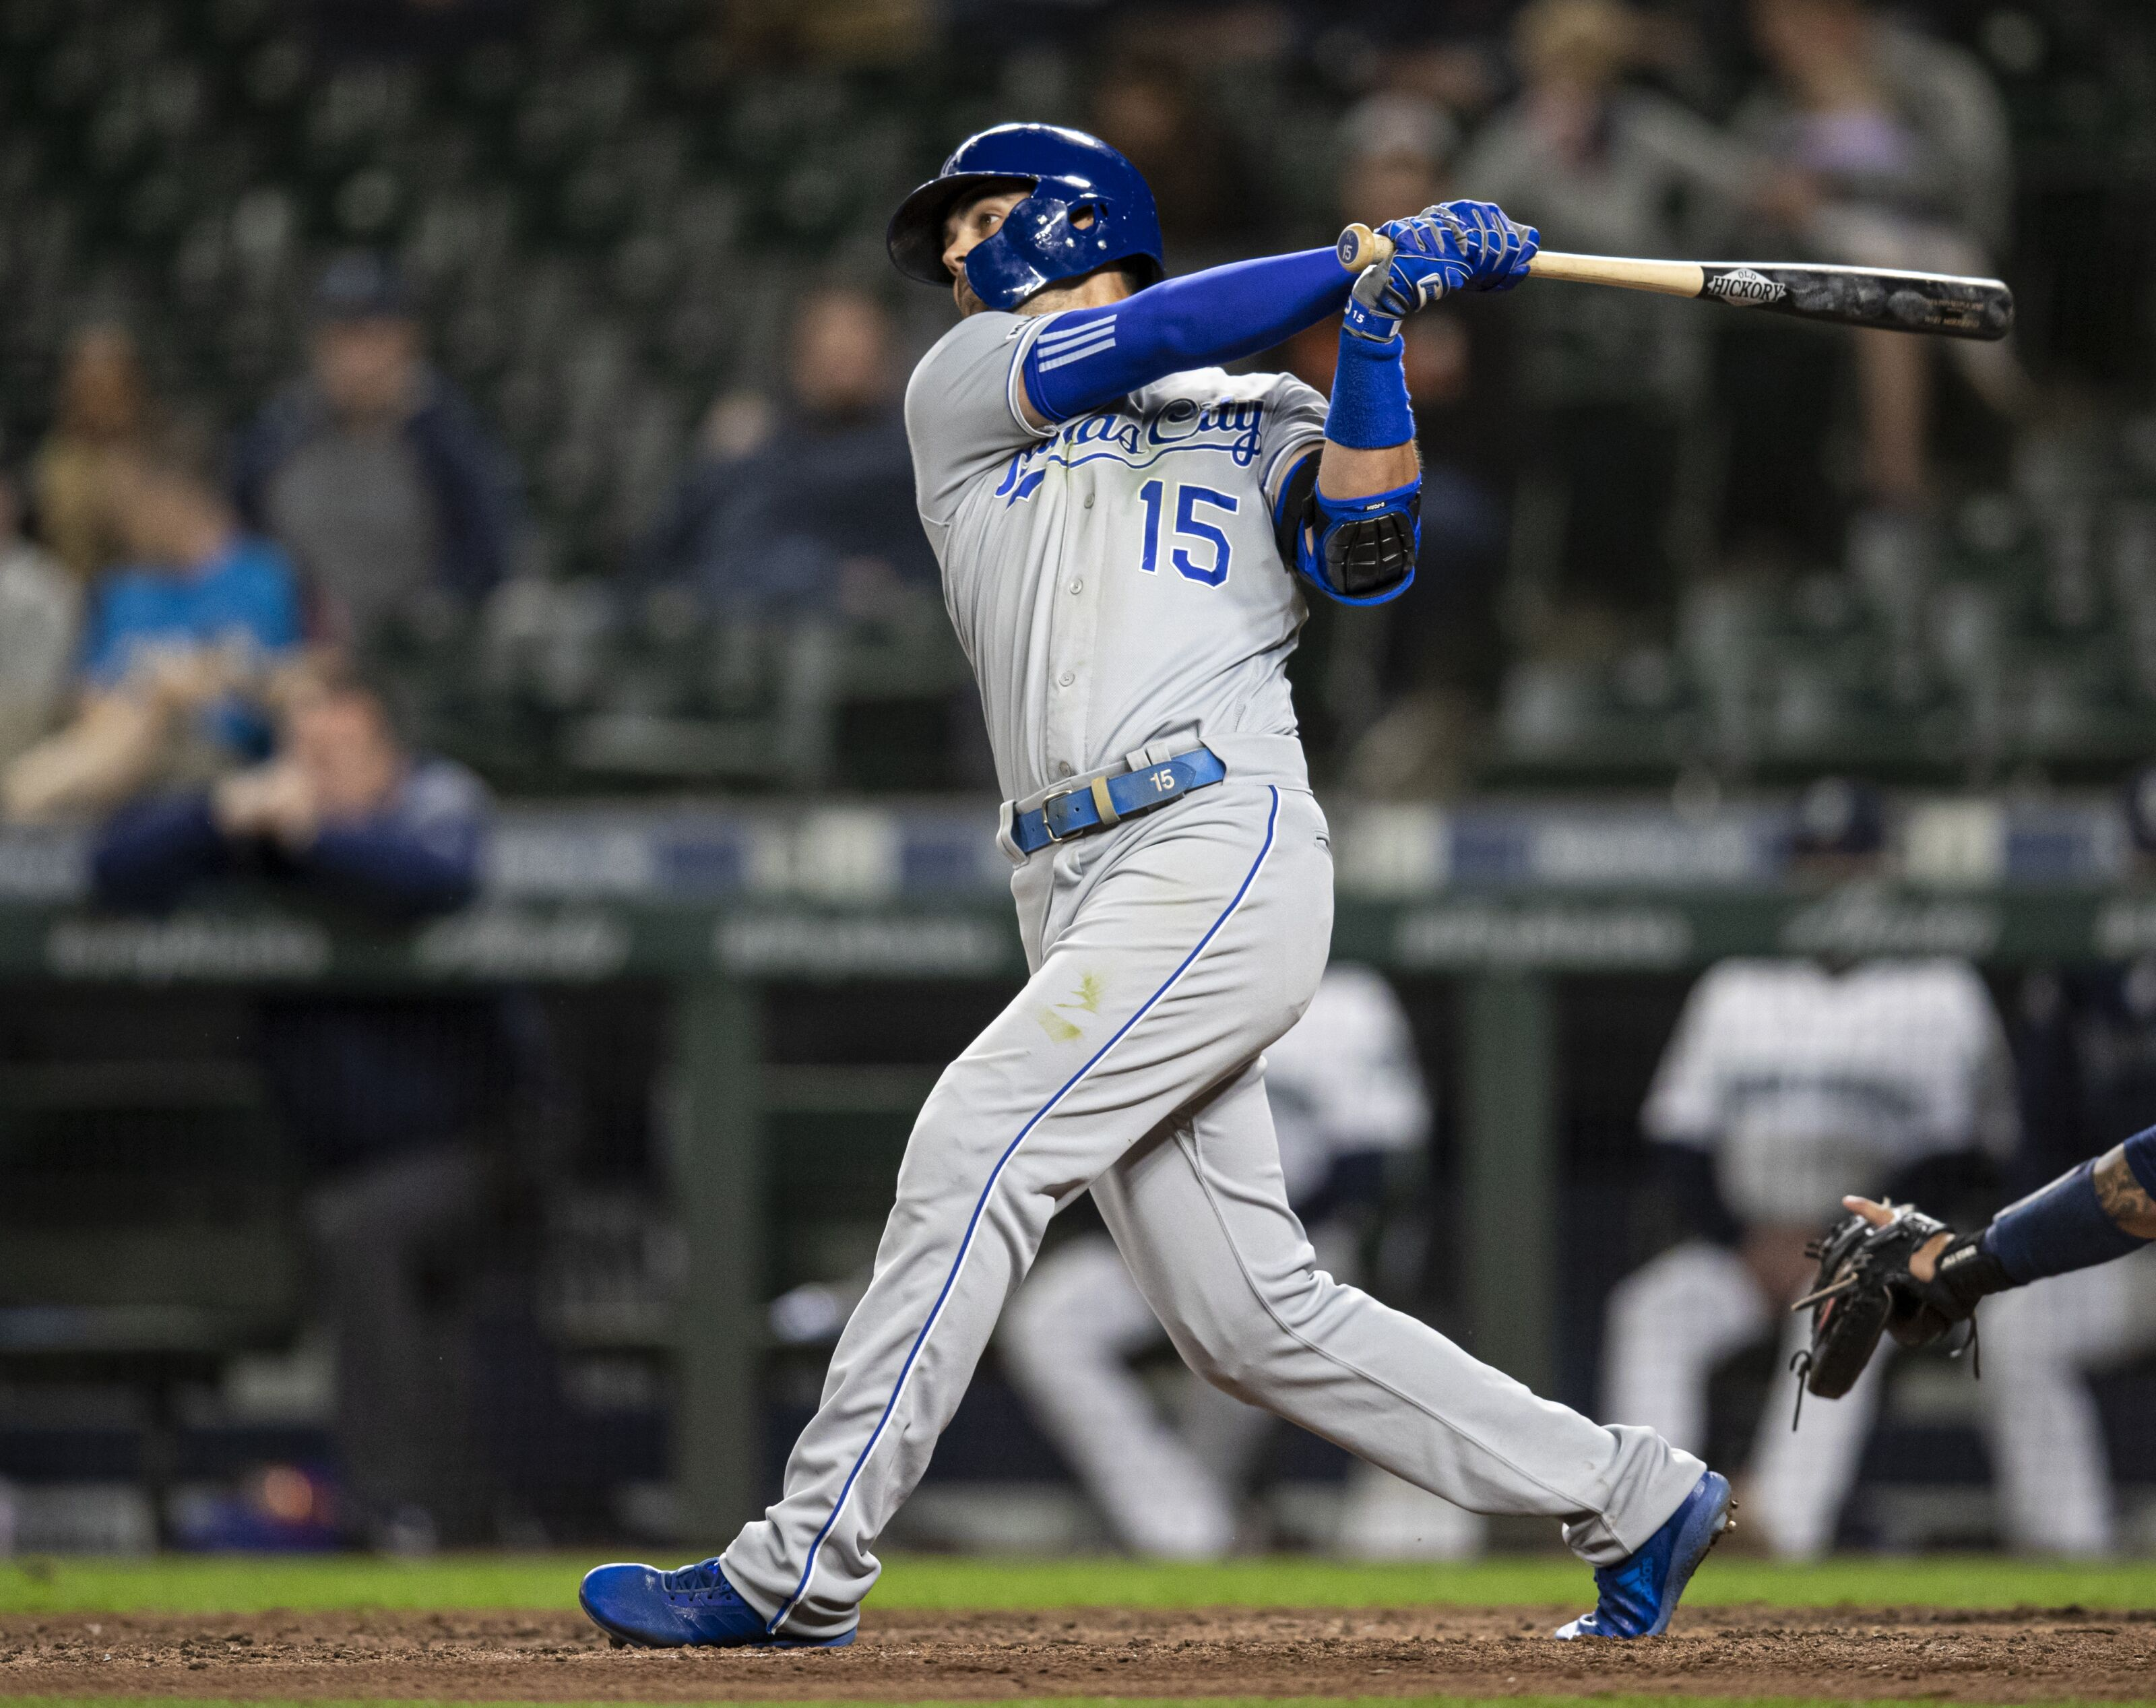 Kansas City Royals: Bad luck and good luck hitting in 2019, Part 1